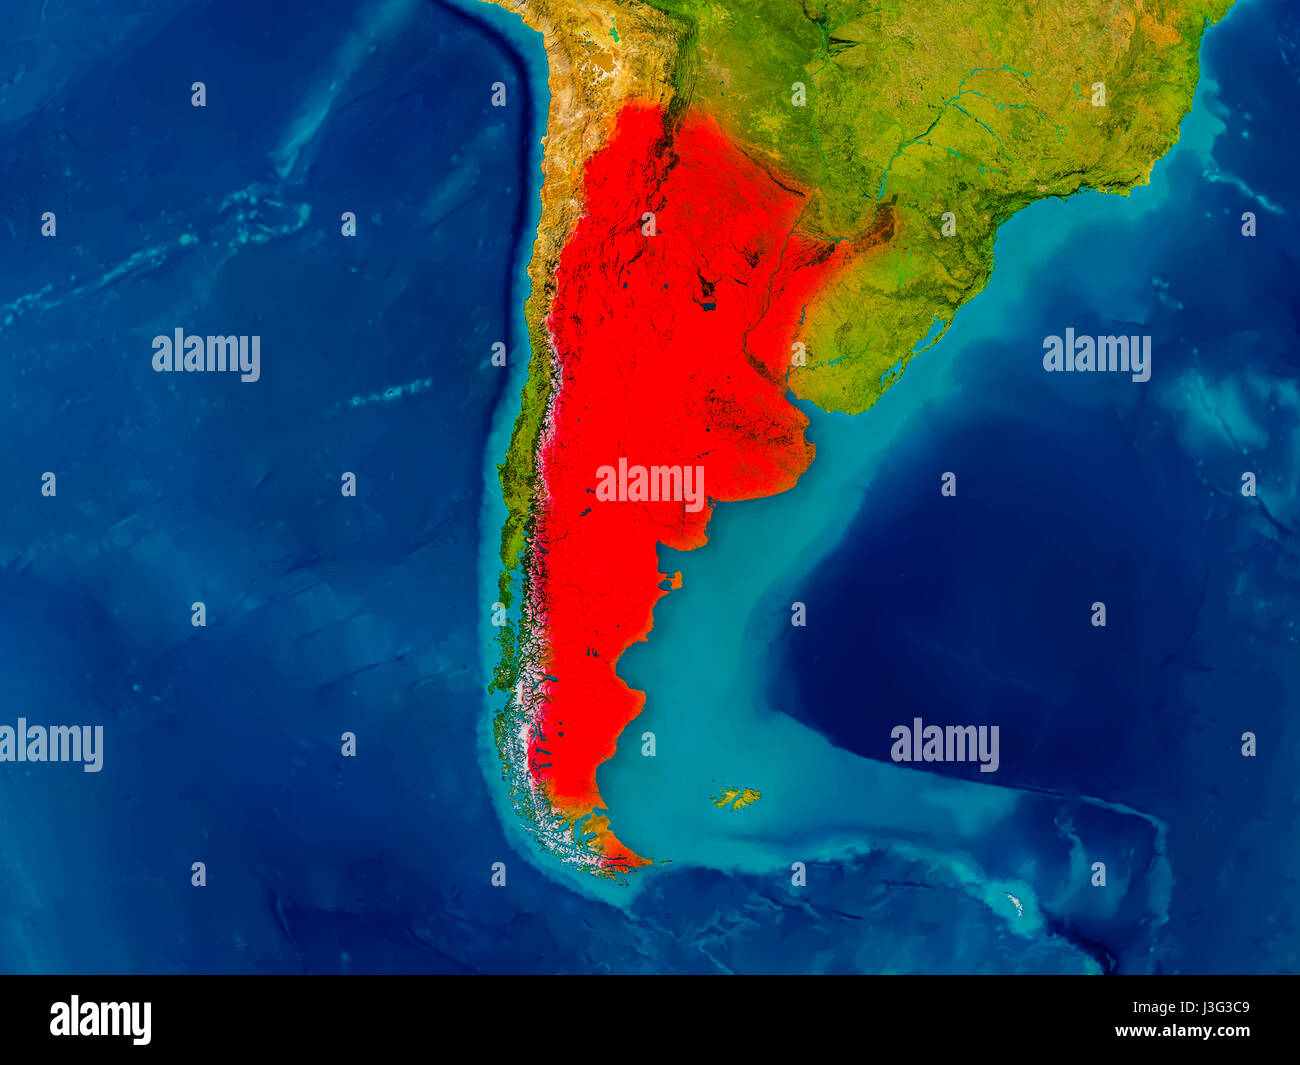 Argentina Highlighted In Red On Physical Map D Illustration - Argentina physical map